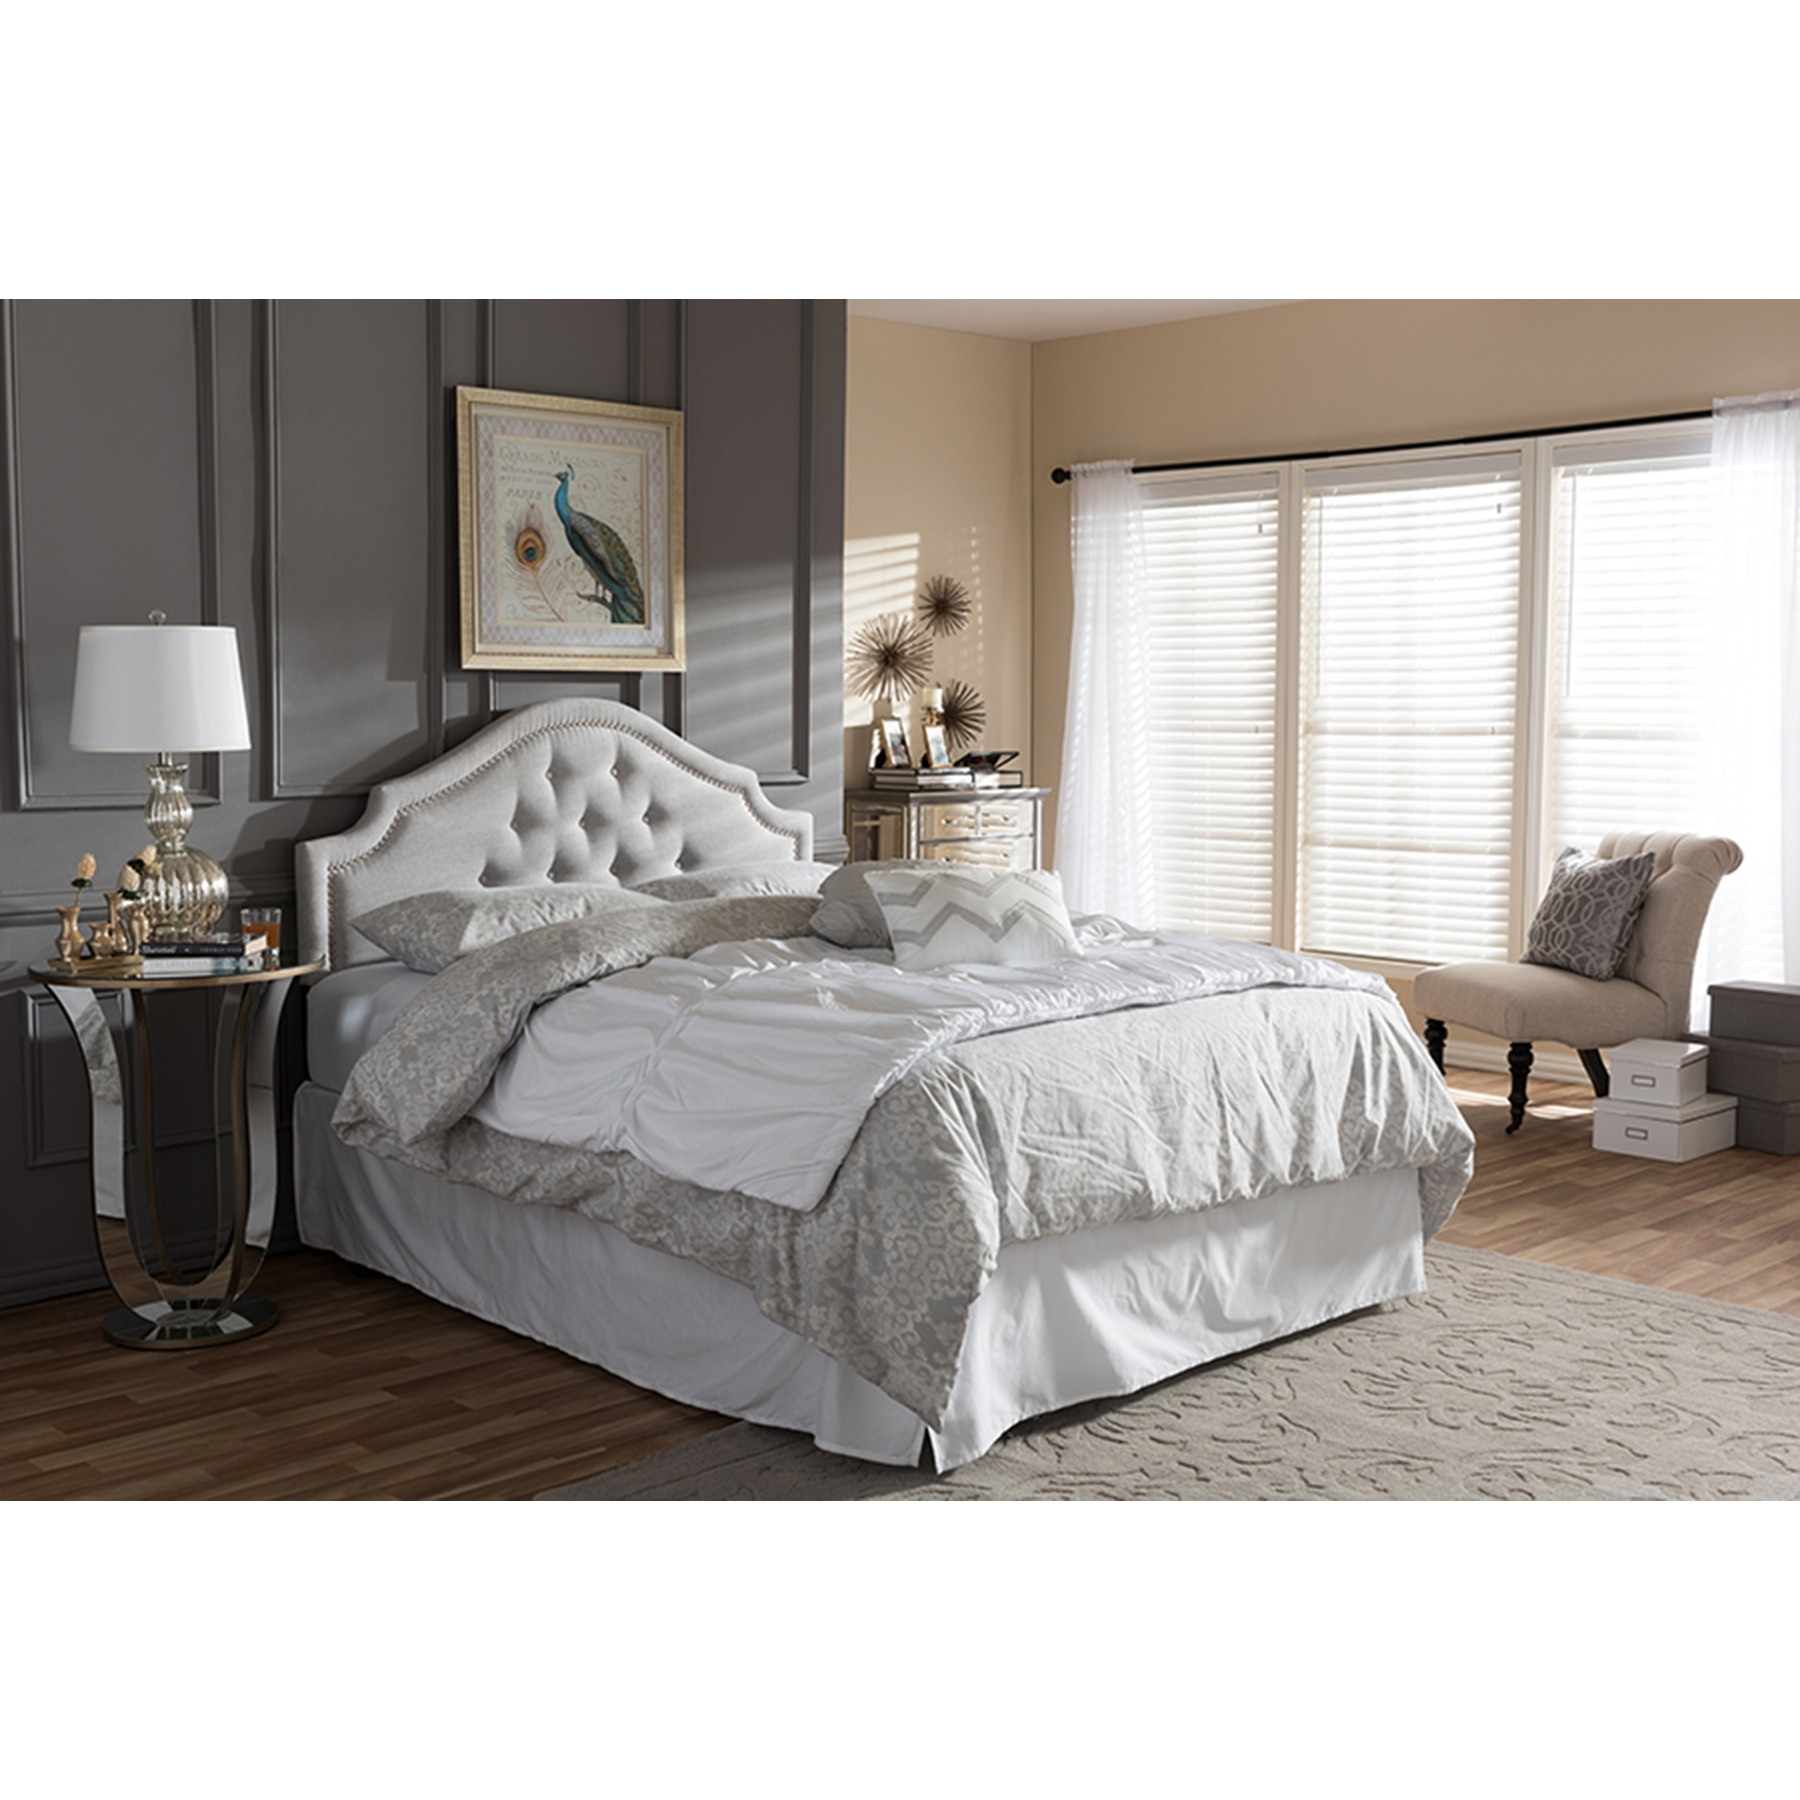 ... Cora Fabric Upholstered Headboard   Button Tufted, Nailhead    WI BBT6564 BED